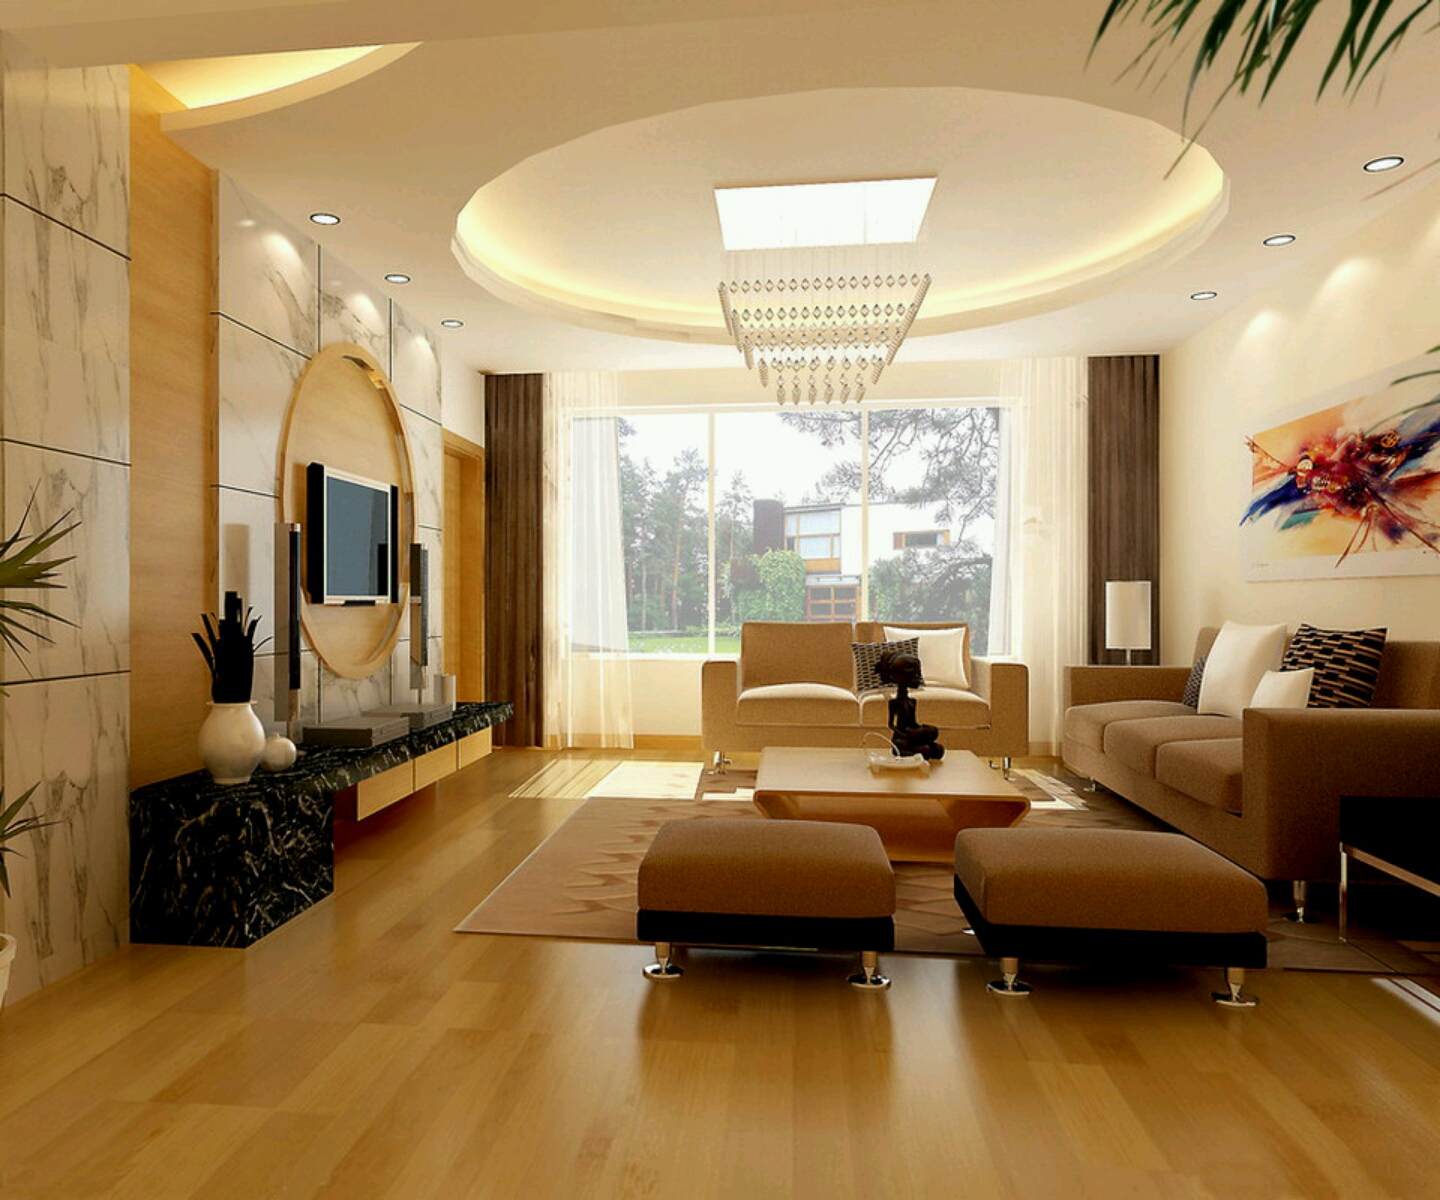 Modern interior decoration living rooms ceiling designs Interior home decoration